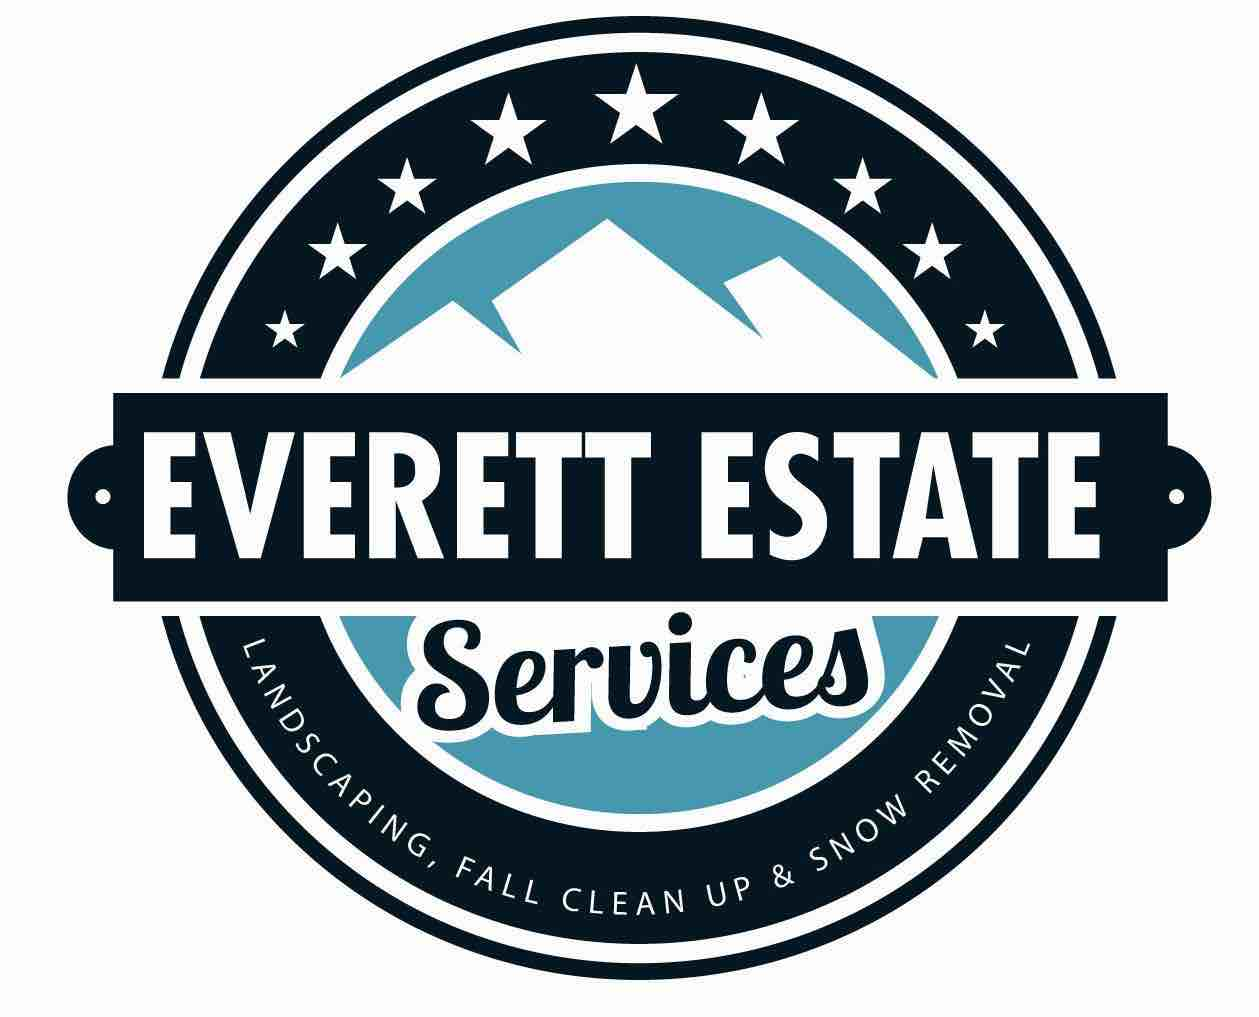 Everett Estate Services